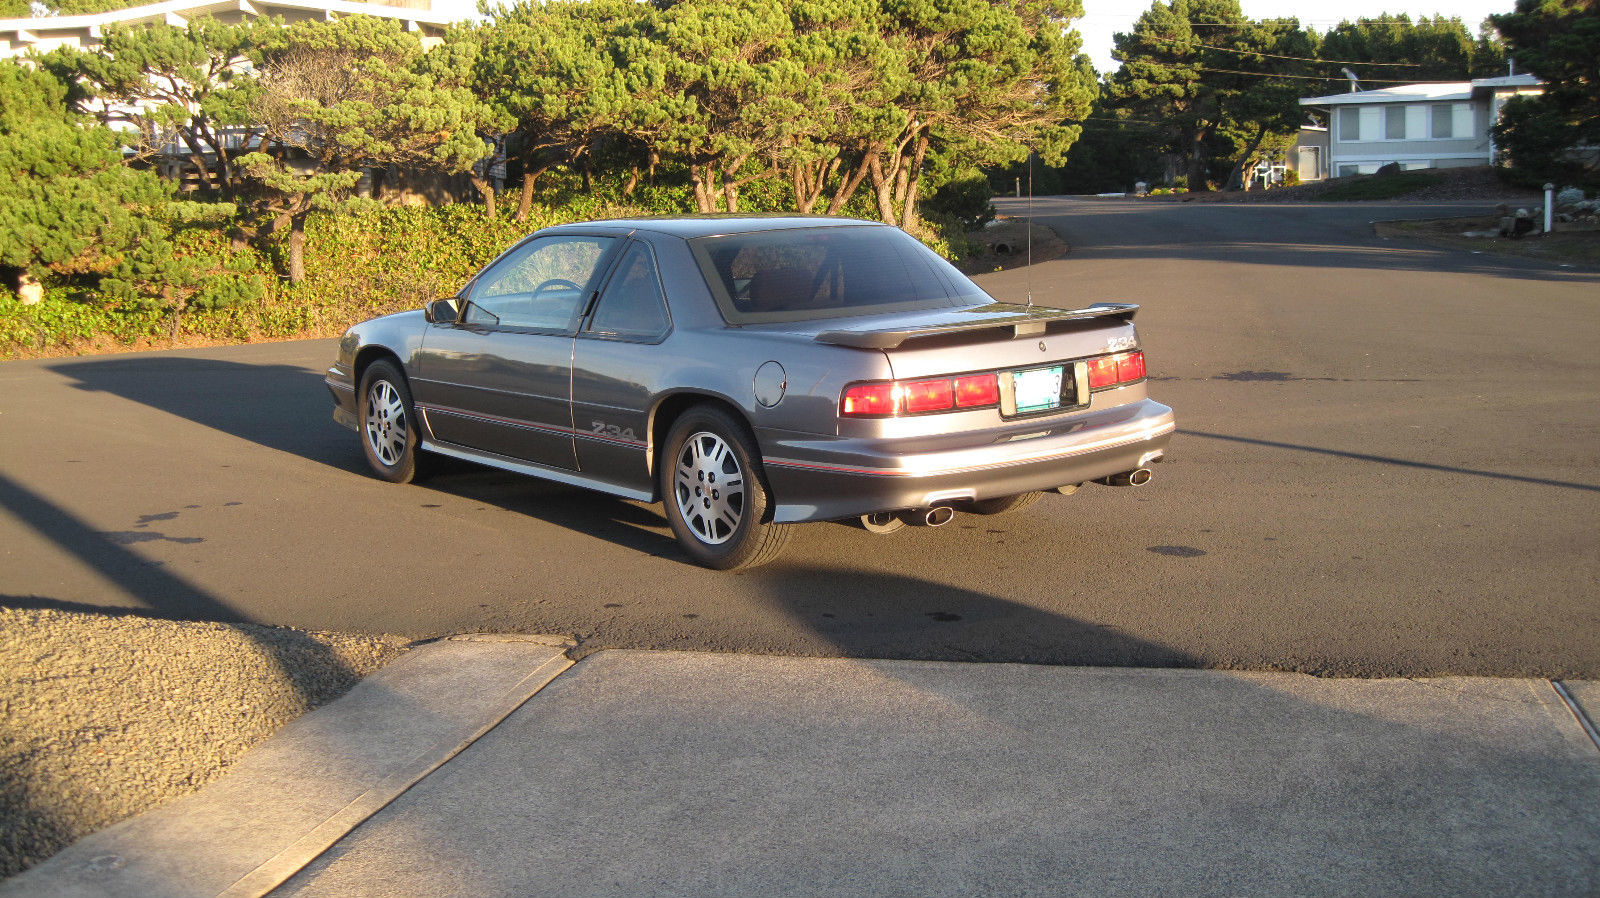 hight resolution of 1993 chevrolet lumina z34 coupe 2 door 3 4l engine with 48 700 actual miles